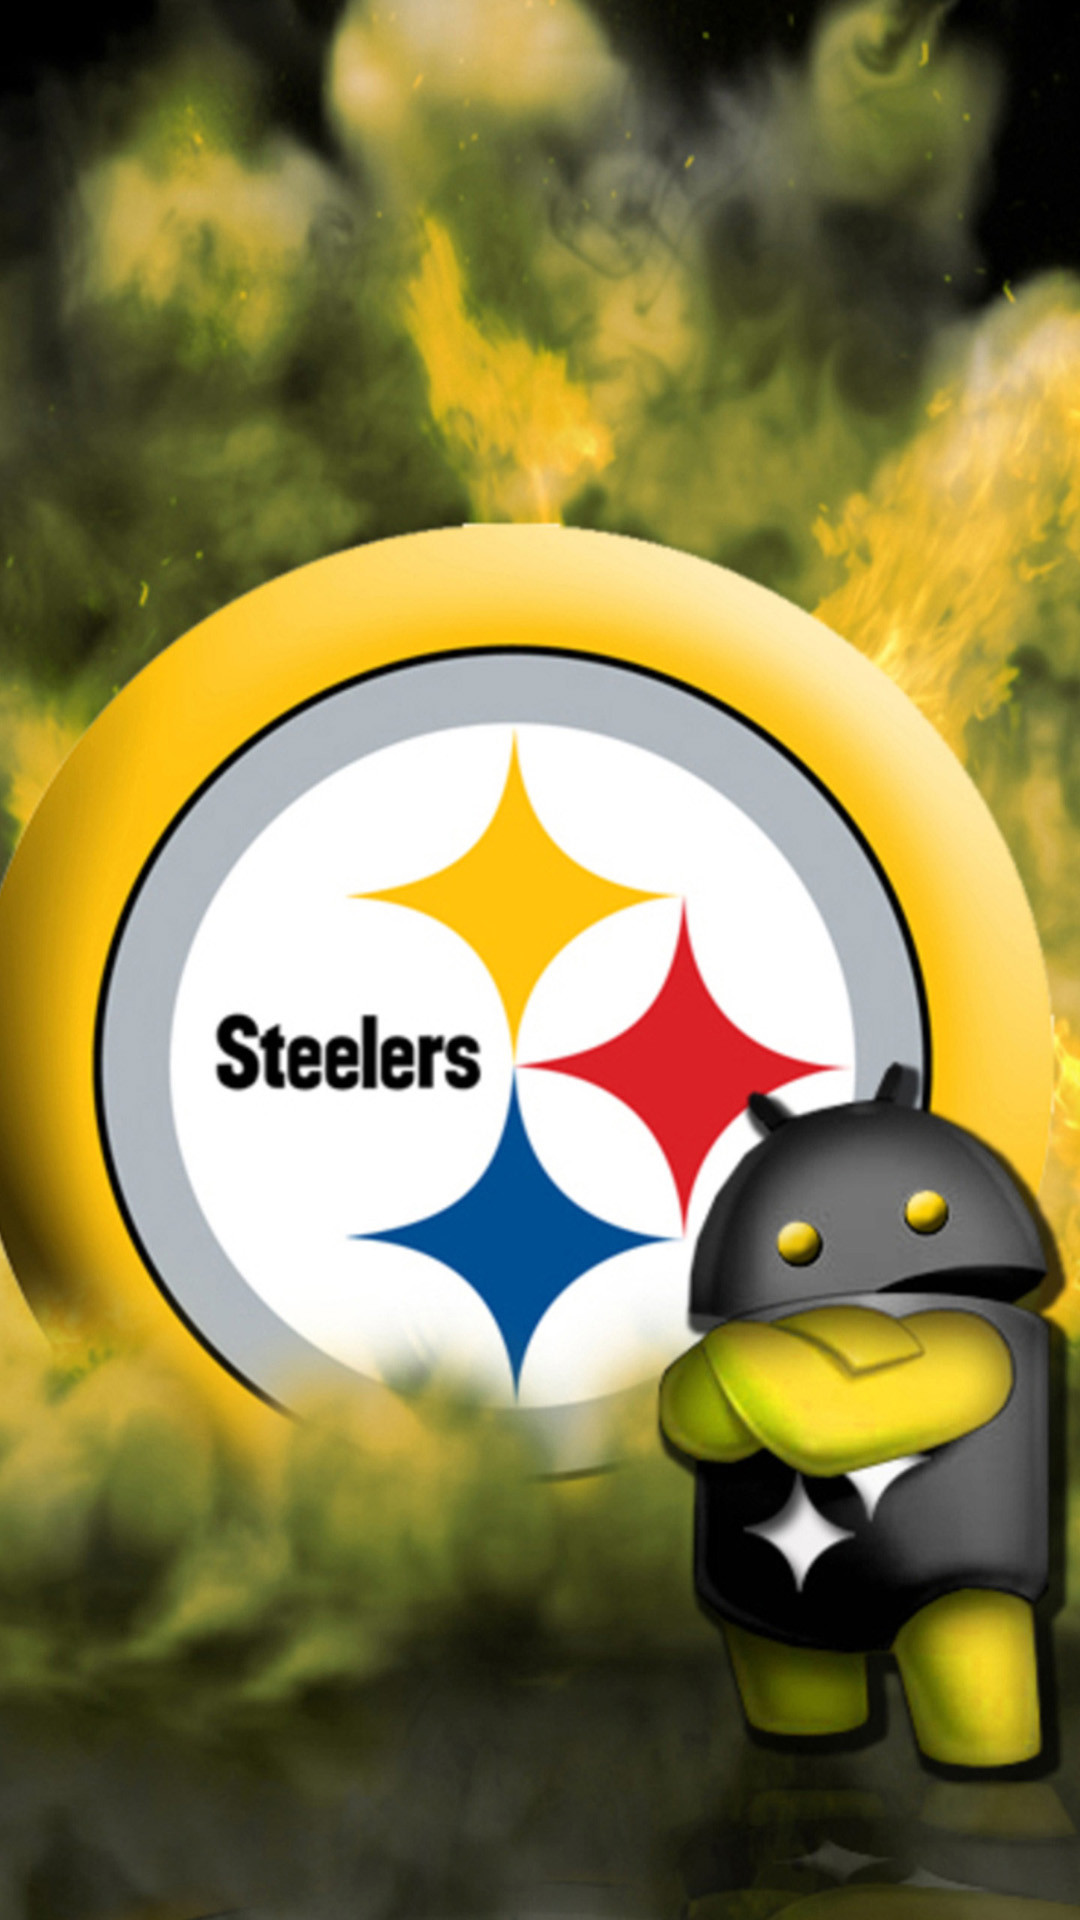 Car Wallpaper Full Hd 1080x1920 Animated Steelers Wallpaper 57 Images